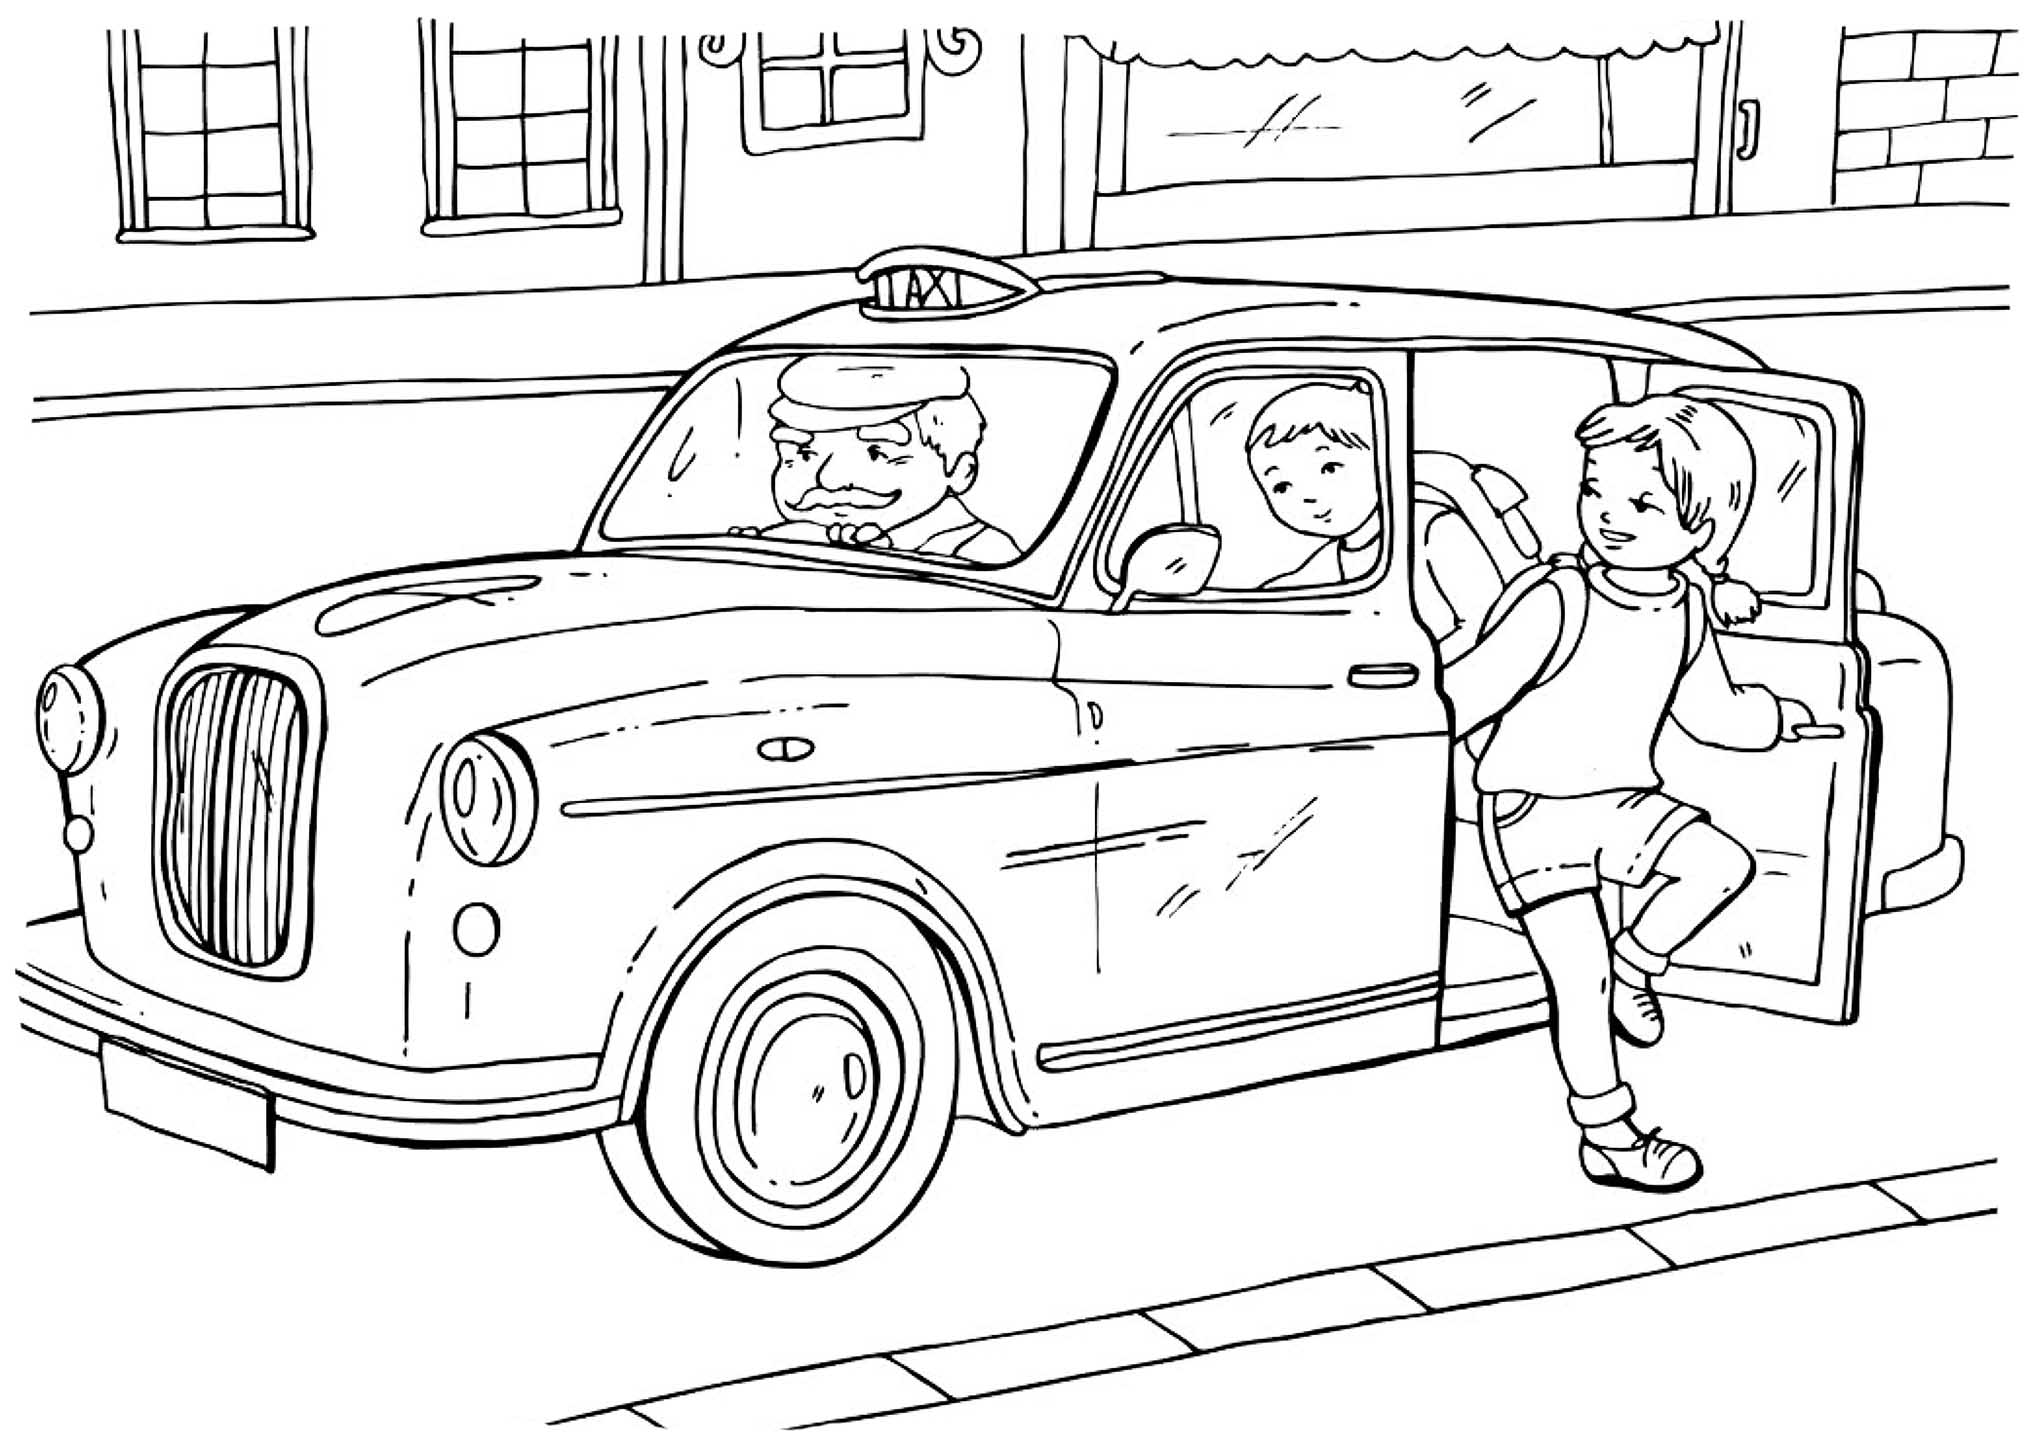 taxi colouring pages front of car drawing at getdrawings free download taxi pages colouring